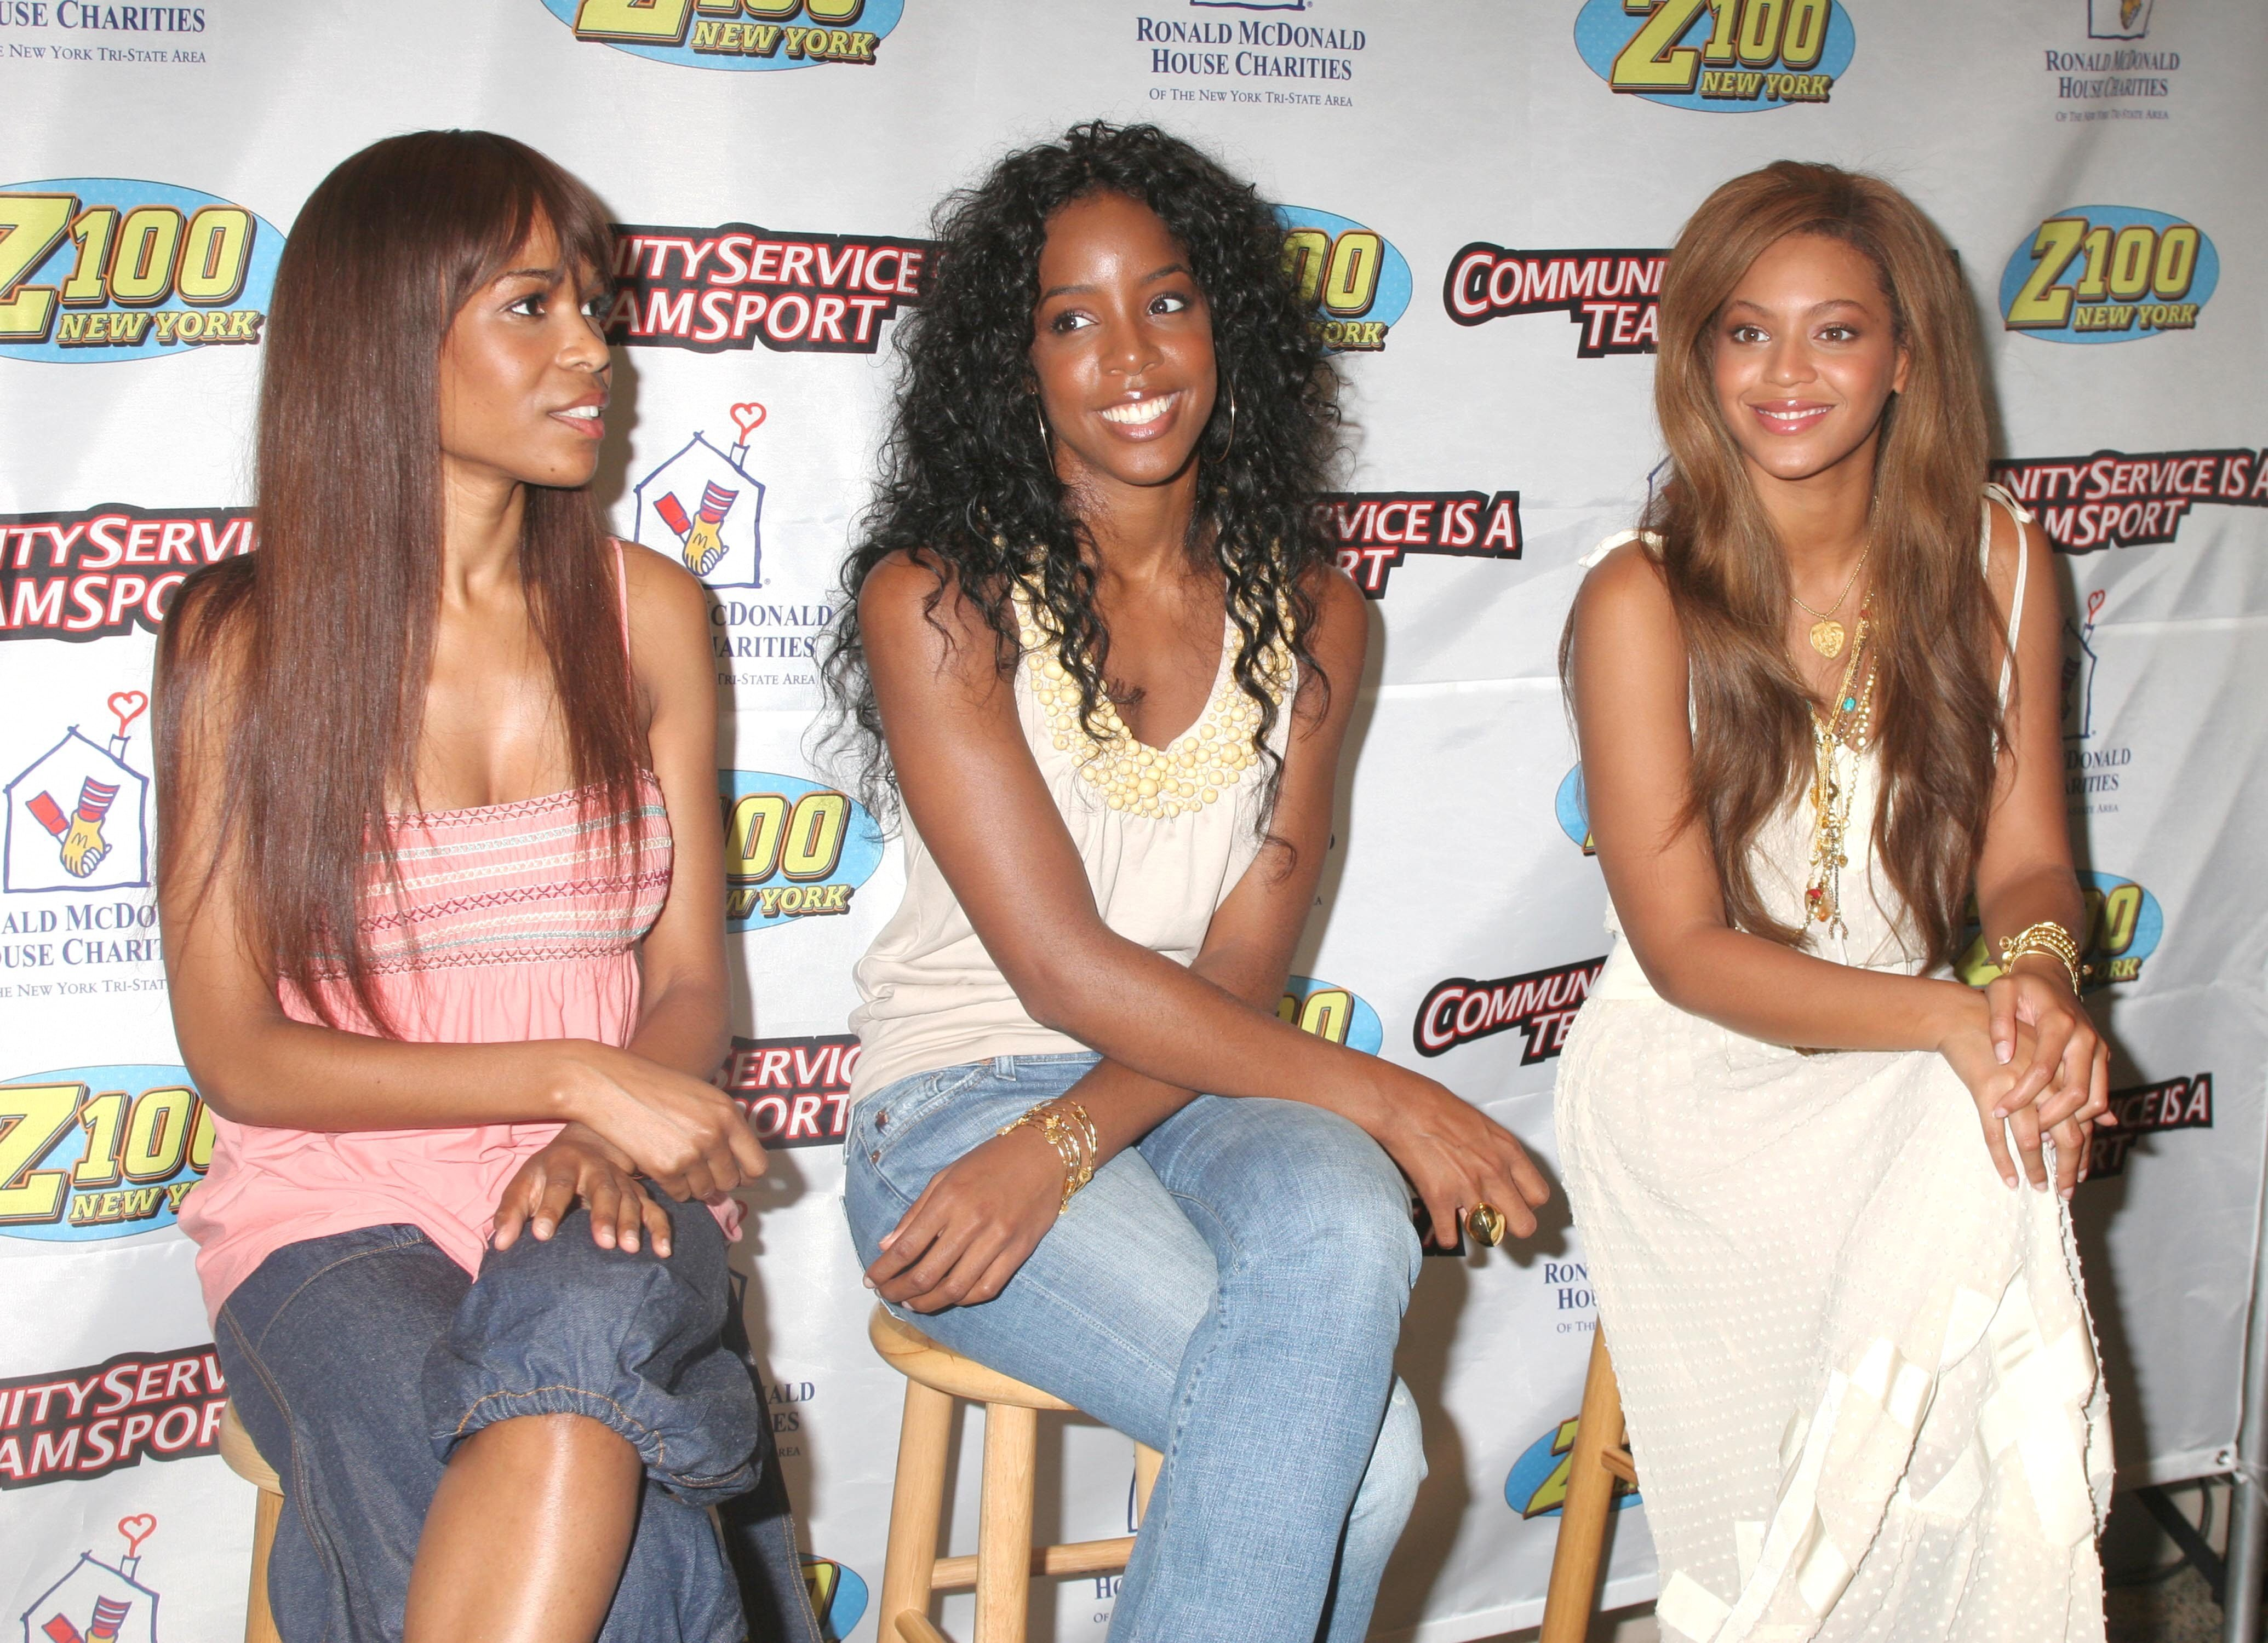 Destiny's Child arrives at Ronald NcDonald House in NYC for a cookie decorating event with children | Photo: Getty Images